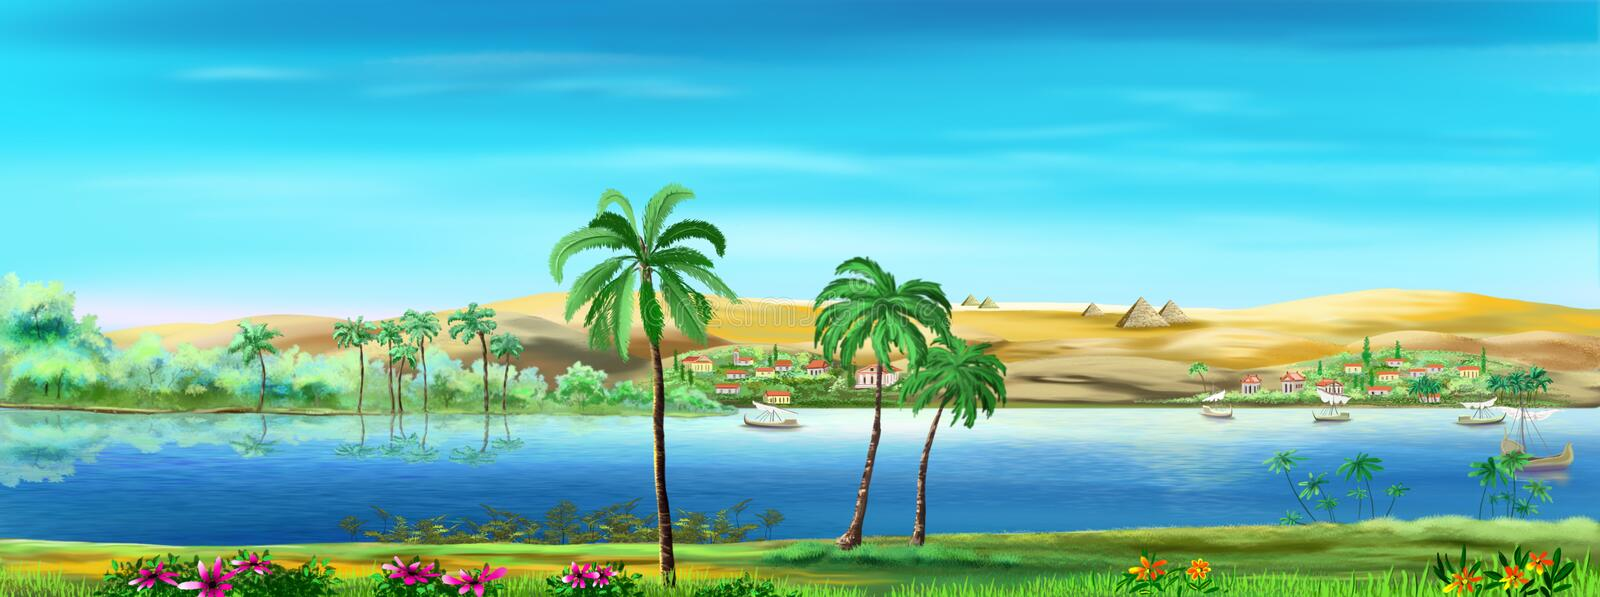 Nile river landscape. Digital painting of the Nile river landscape in the ancient times stock illustration